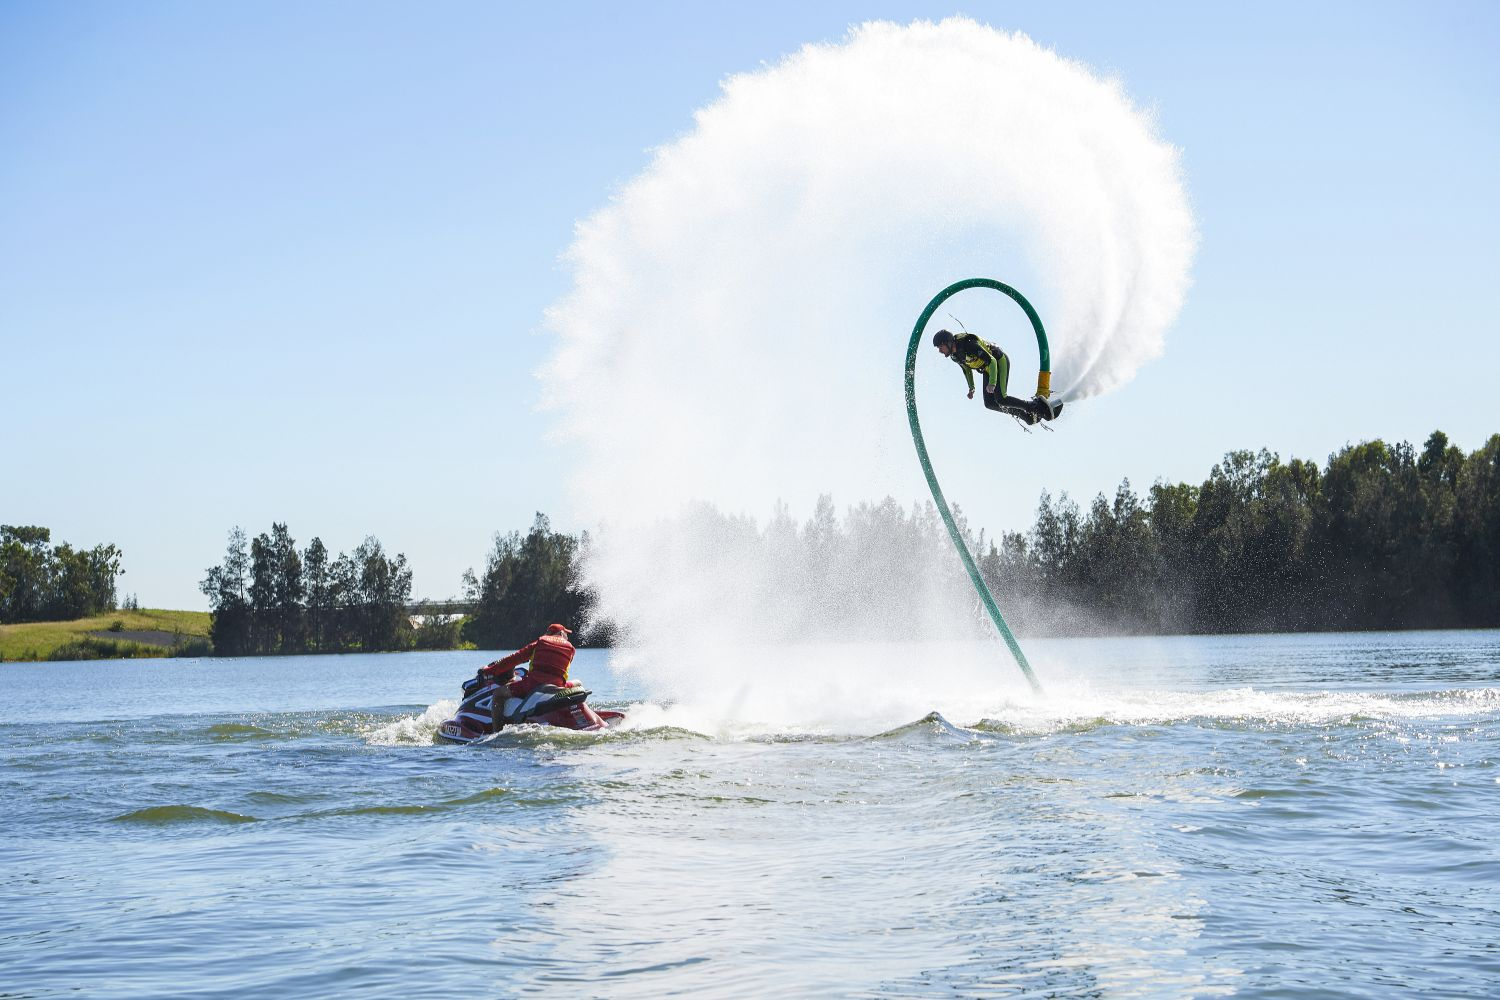 Man enjoying an action-packed experience at Jetpack Adventures, Penrith